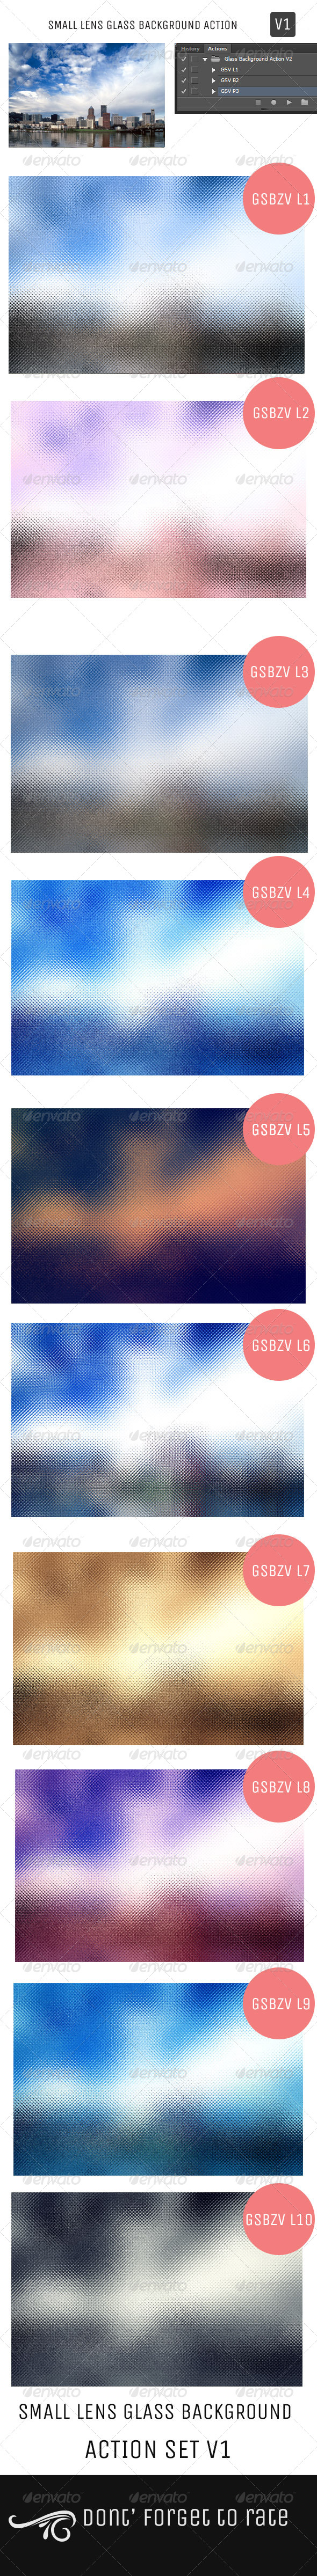 GraphicRiver Small Lens Glass Background Action V1 5072114